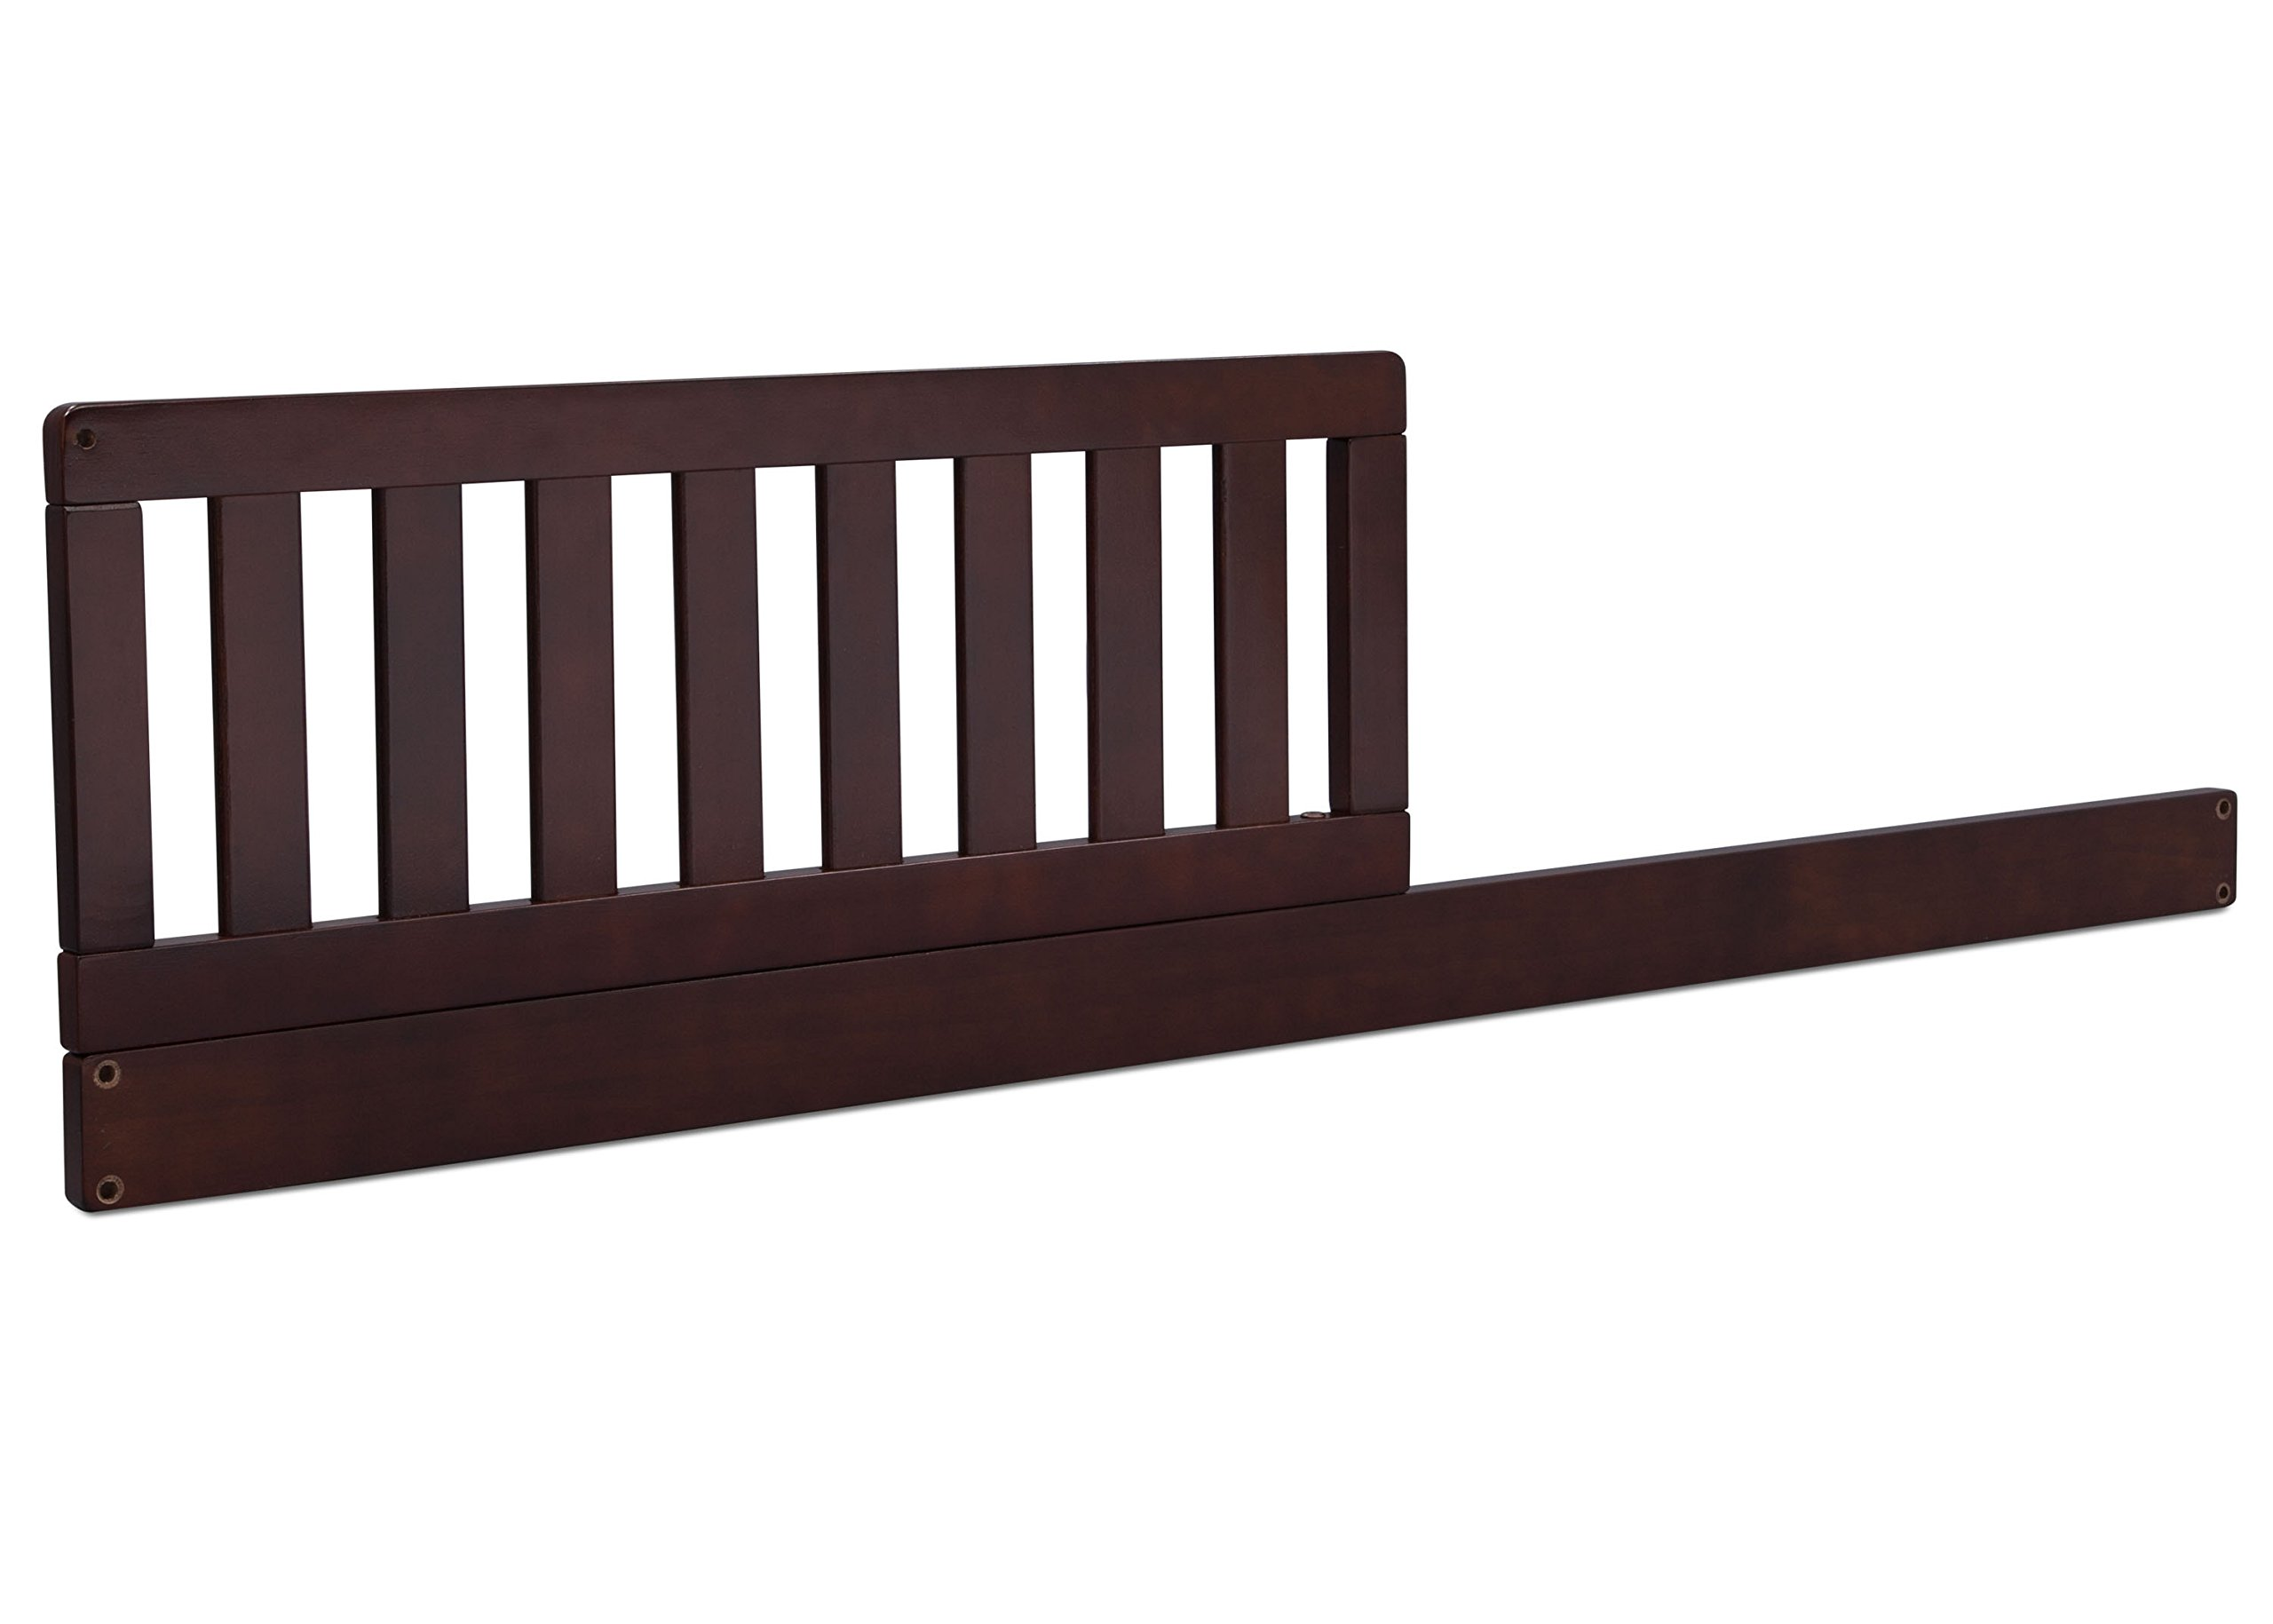 Serta Daybed/Toddler Guardrail Kit, Dark Chocolate by Serta